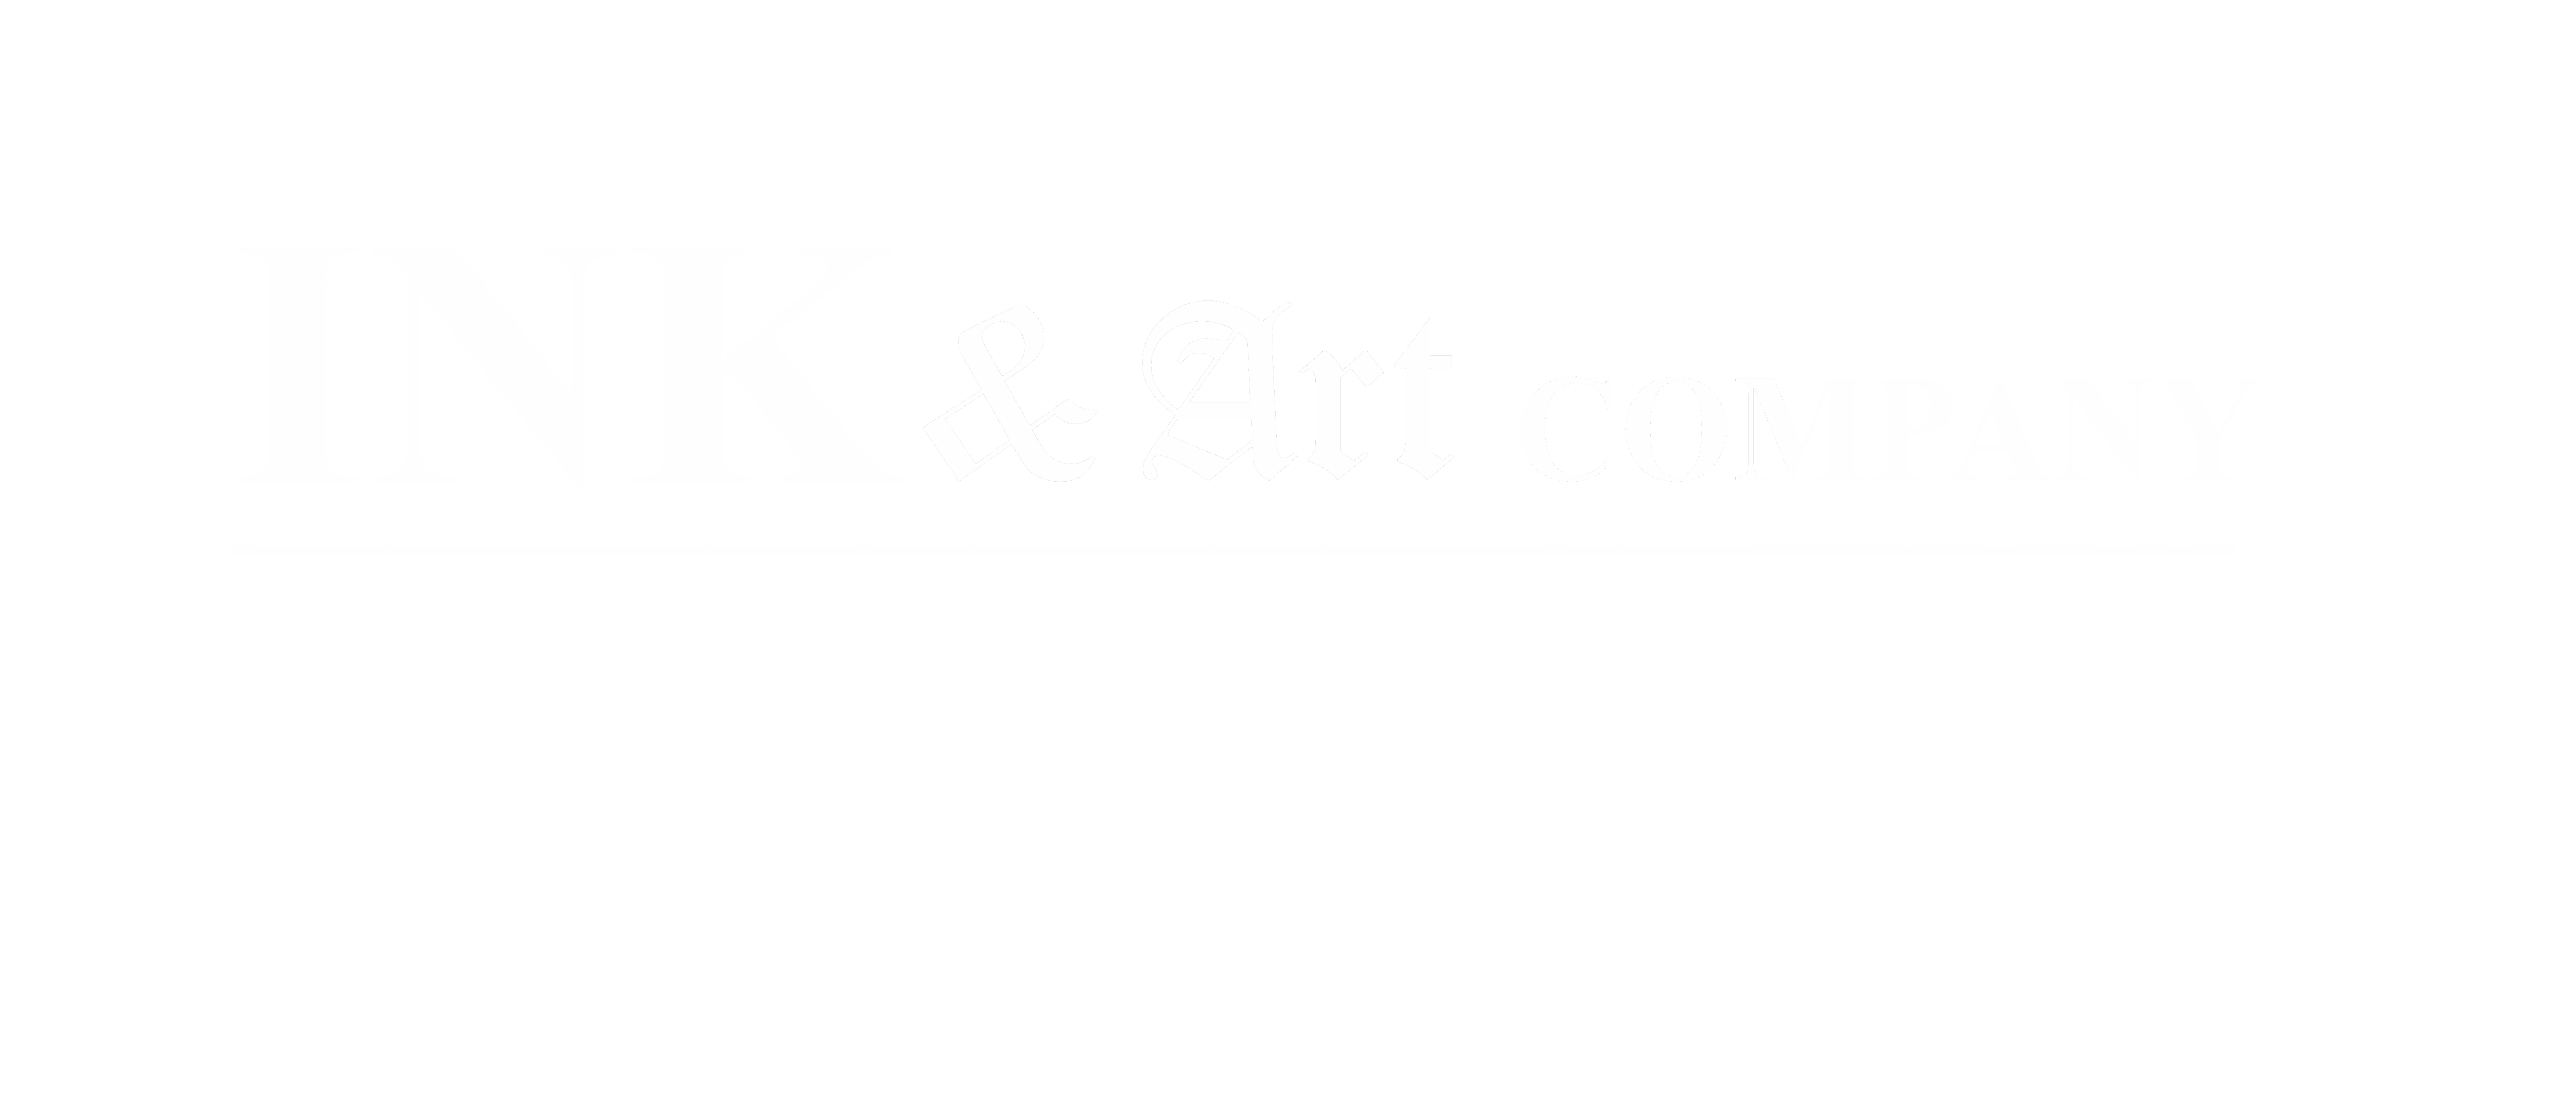 Logo Ink & Art Company wit